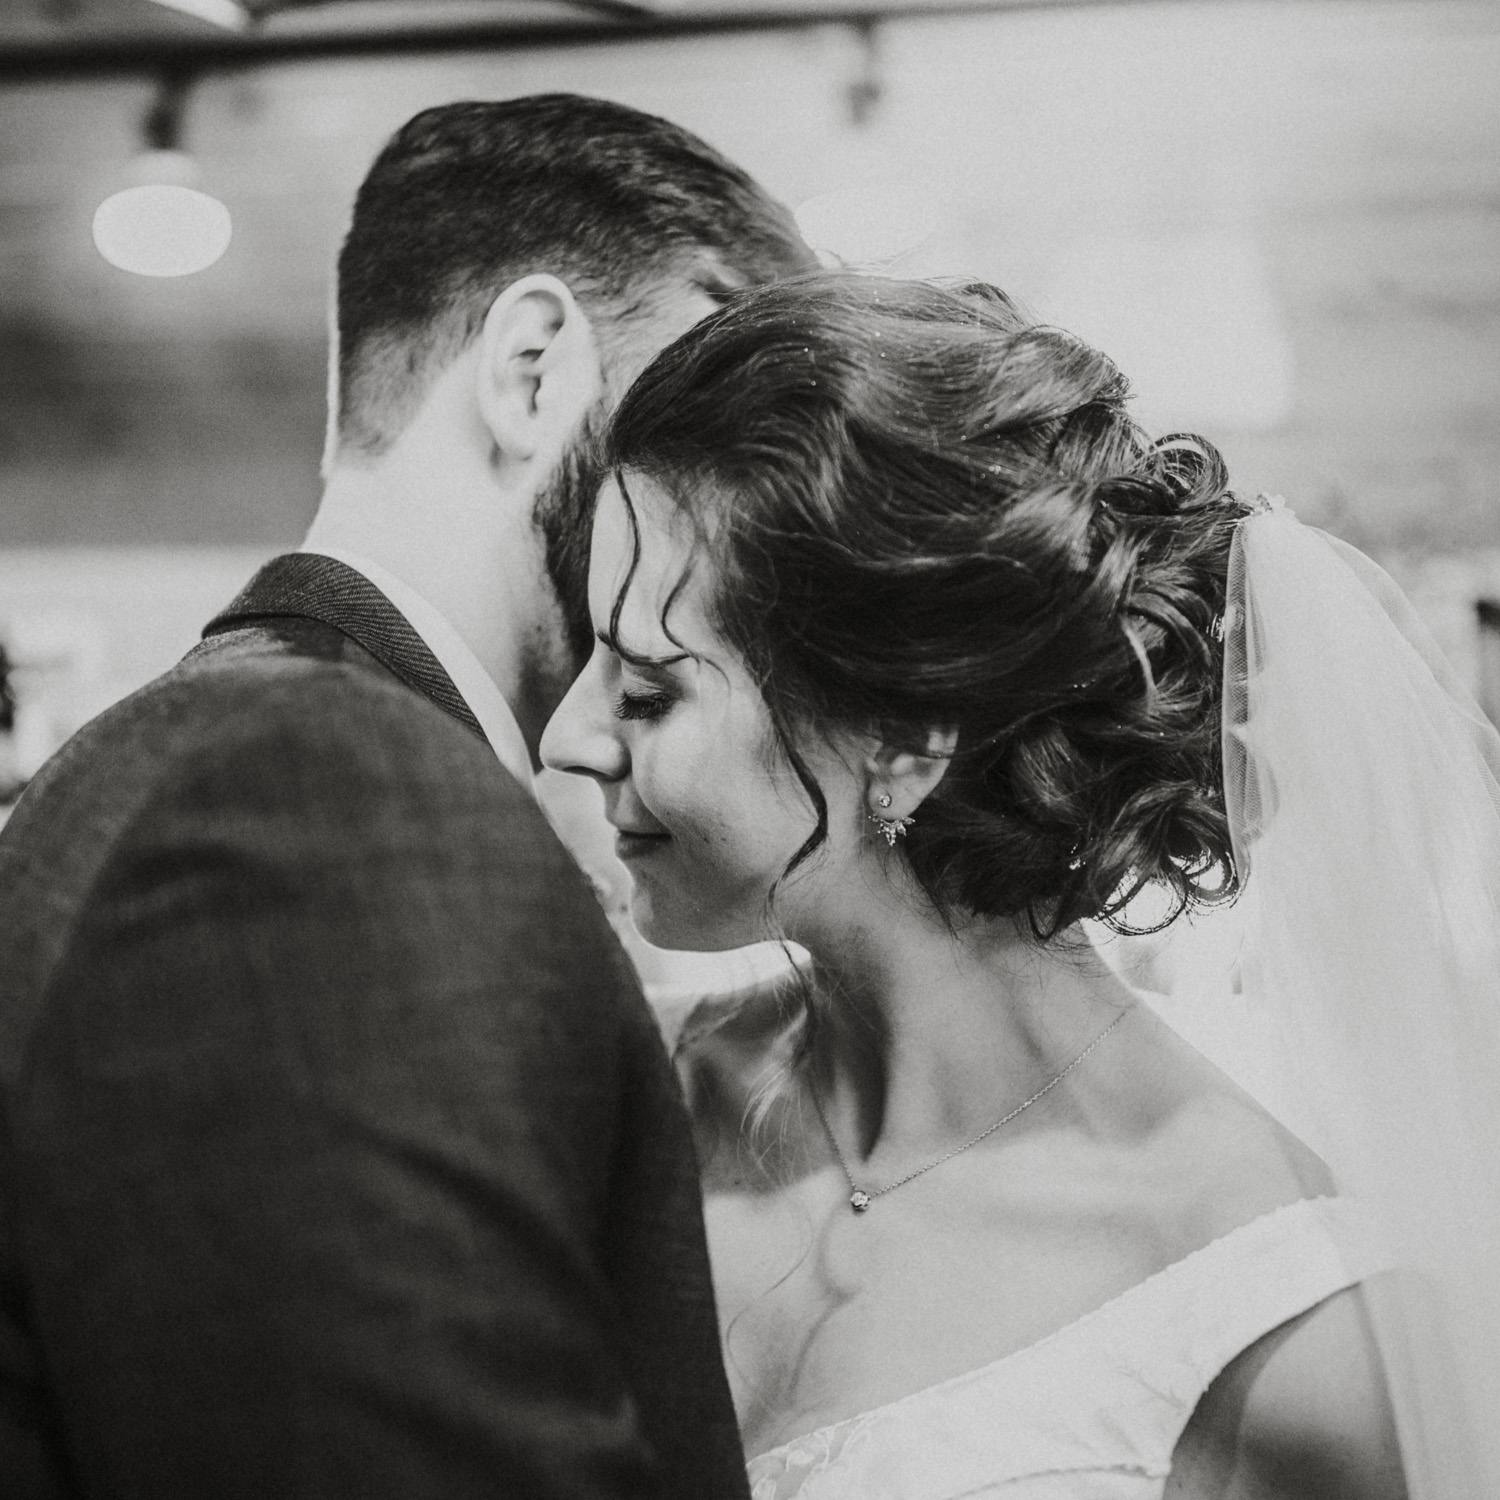 grace and steve-new years eve wedding-Bryden Giving Photographer-Wedding Photographer-Minneapolis-Minnesota-Saint Paul-Lifestyle-Twin Cities-Whitefish Lodge